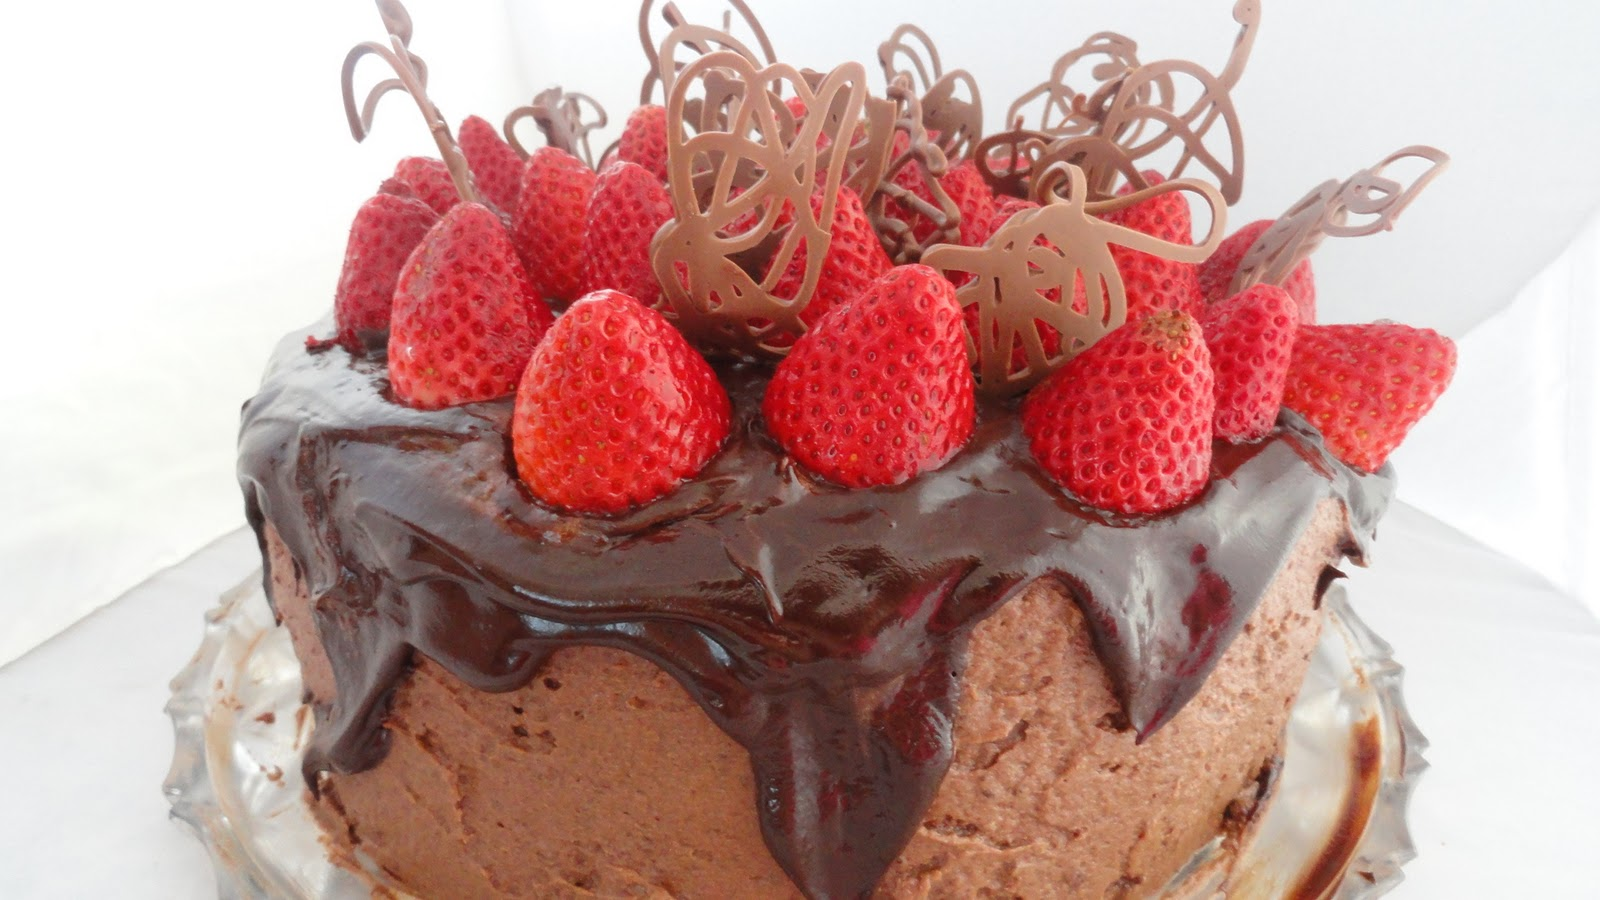 The On-Call Cook: Chocolate Strawberry Celebration Cake